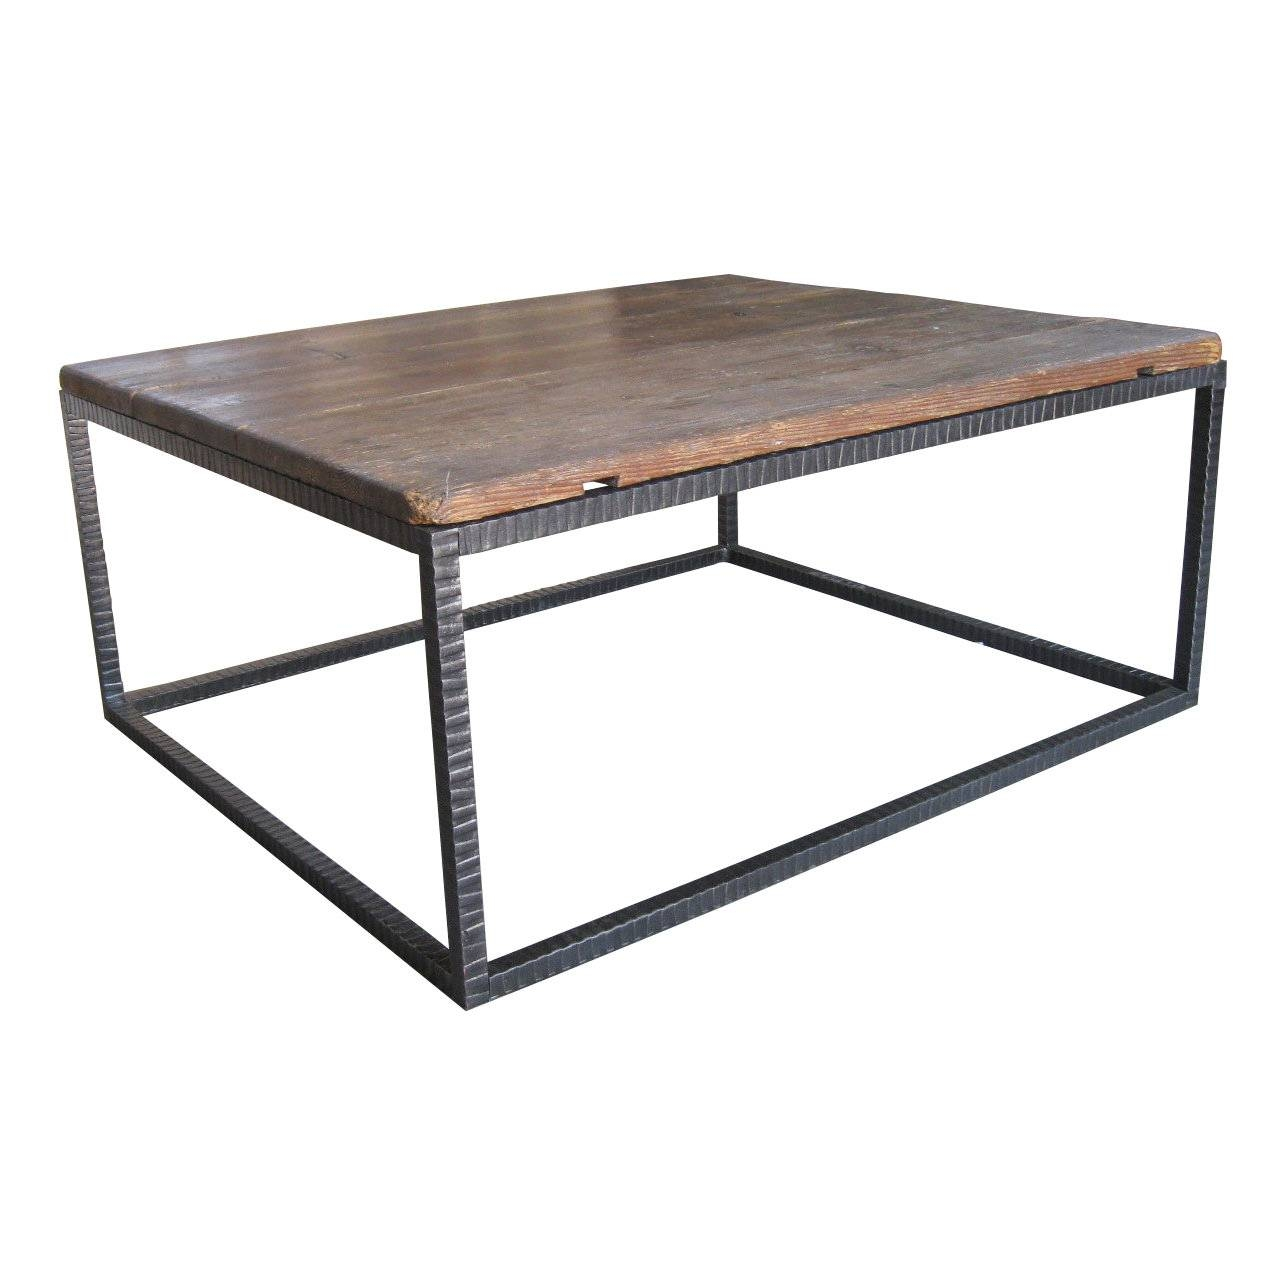 Amazing Coffee Table Base Also Sweet Home Designing Inspiration intended for Chrome Coffee Table Bases (Image 3 of 30)